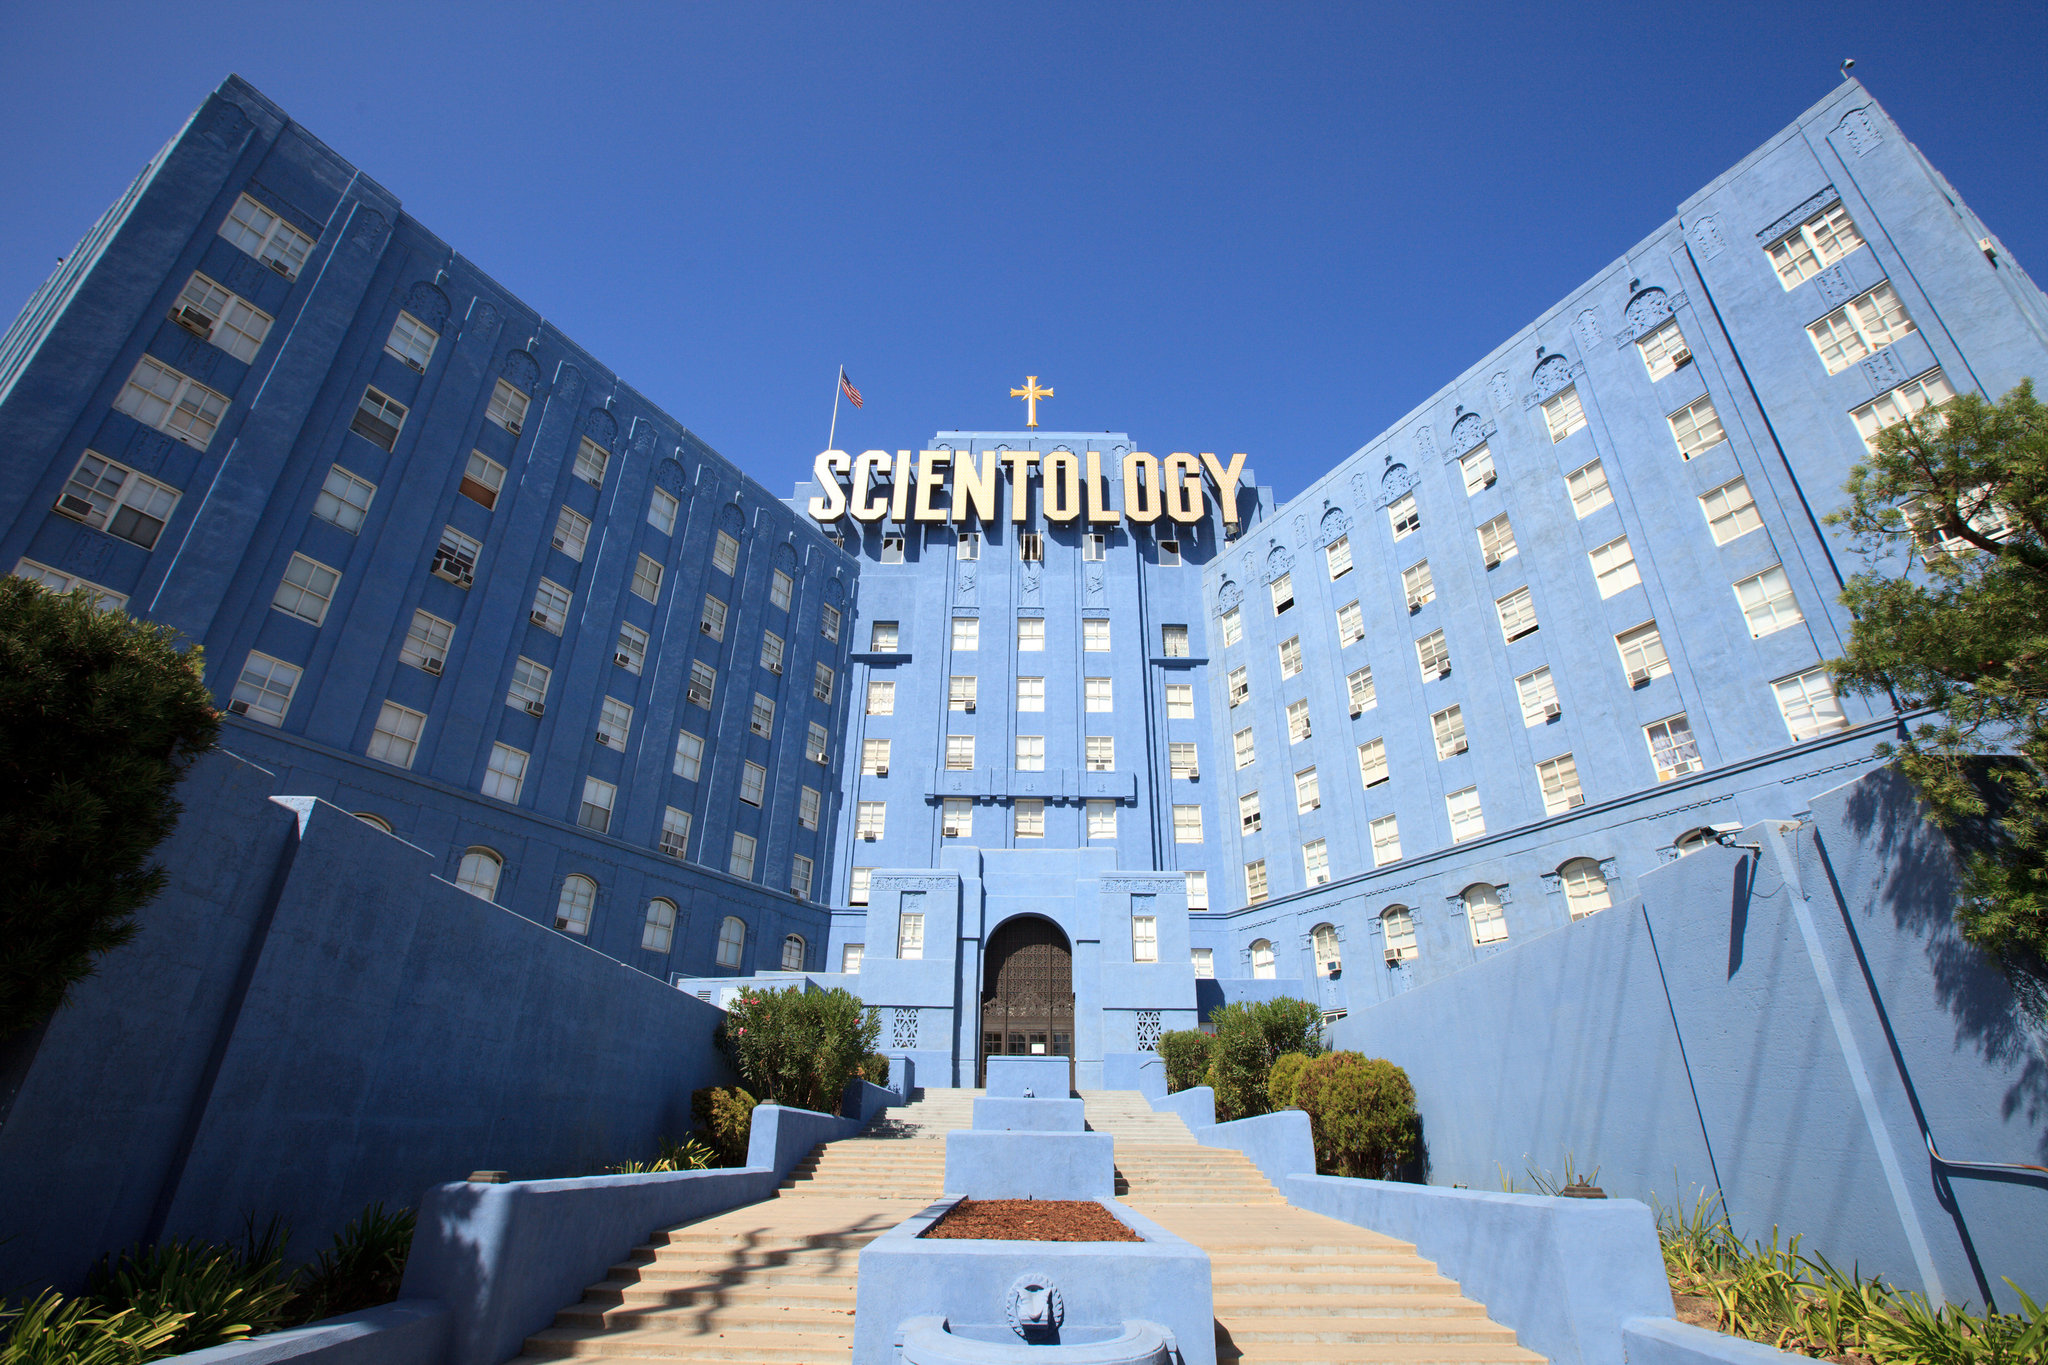 What really is Scientology?